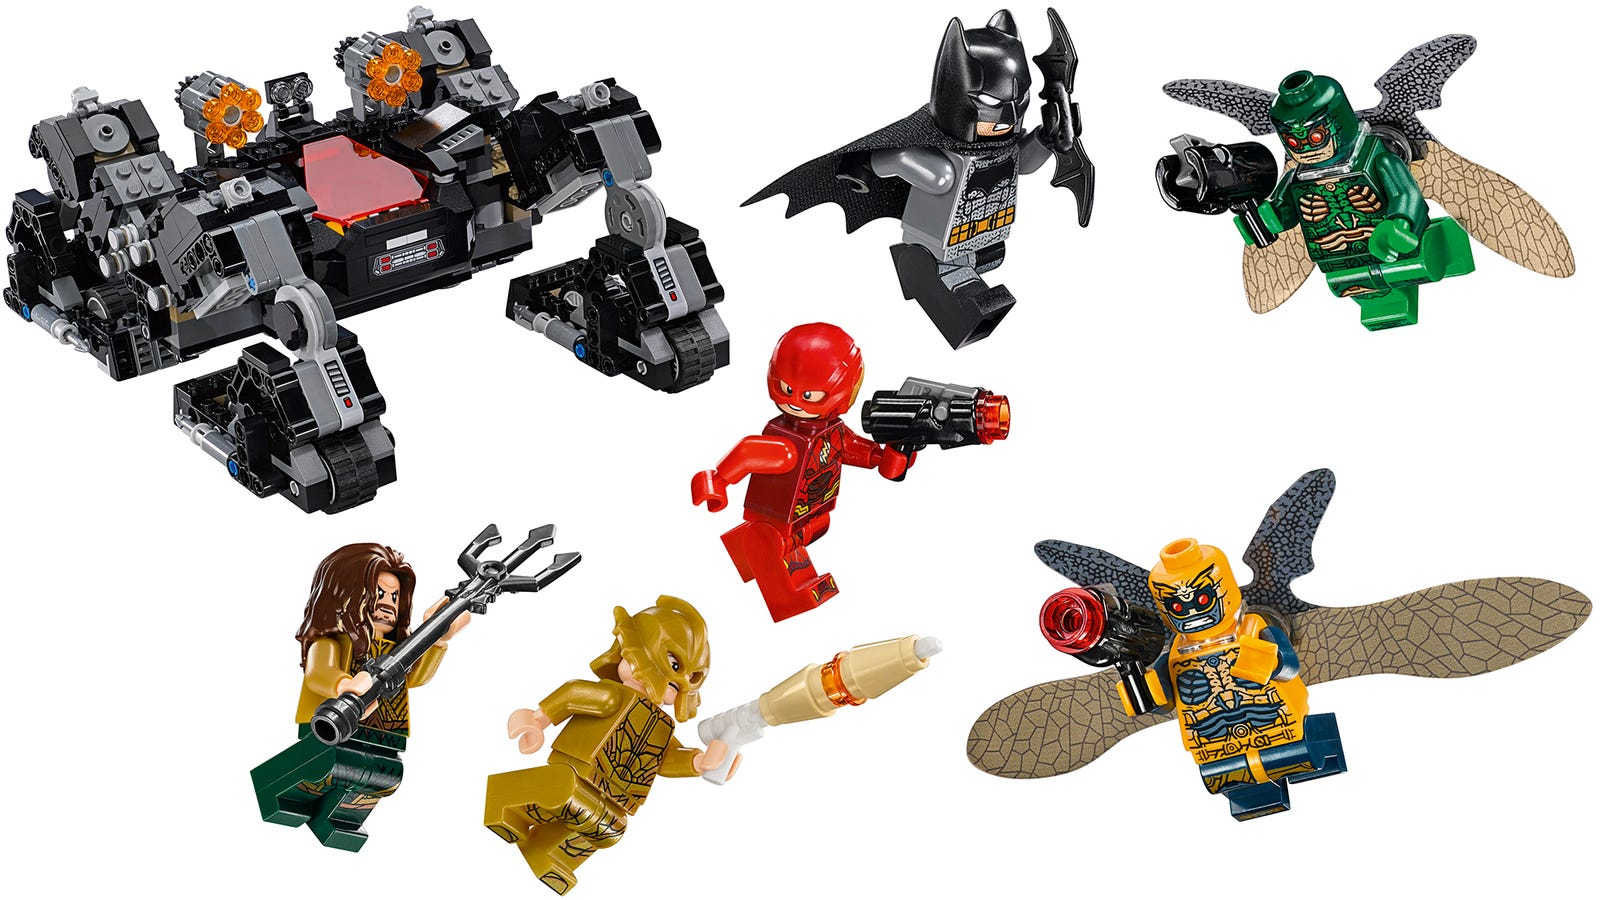 legos justice league sets reveal the films villains and